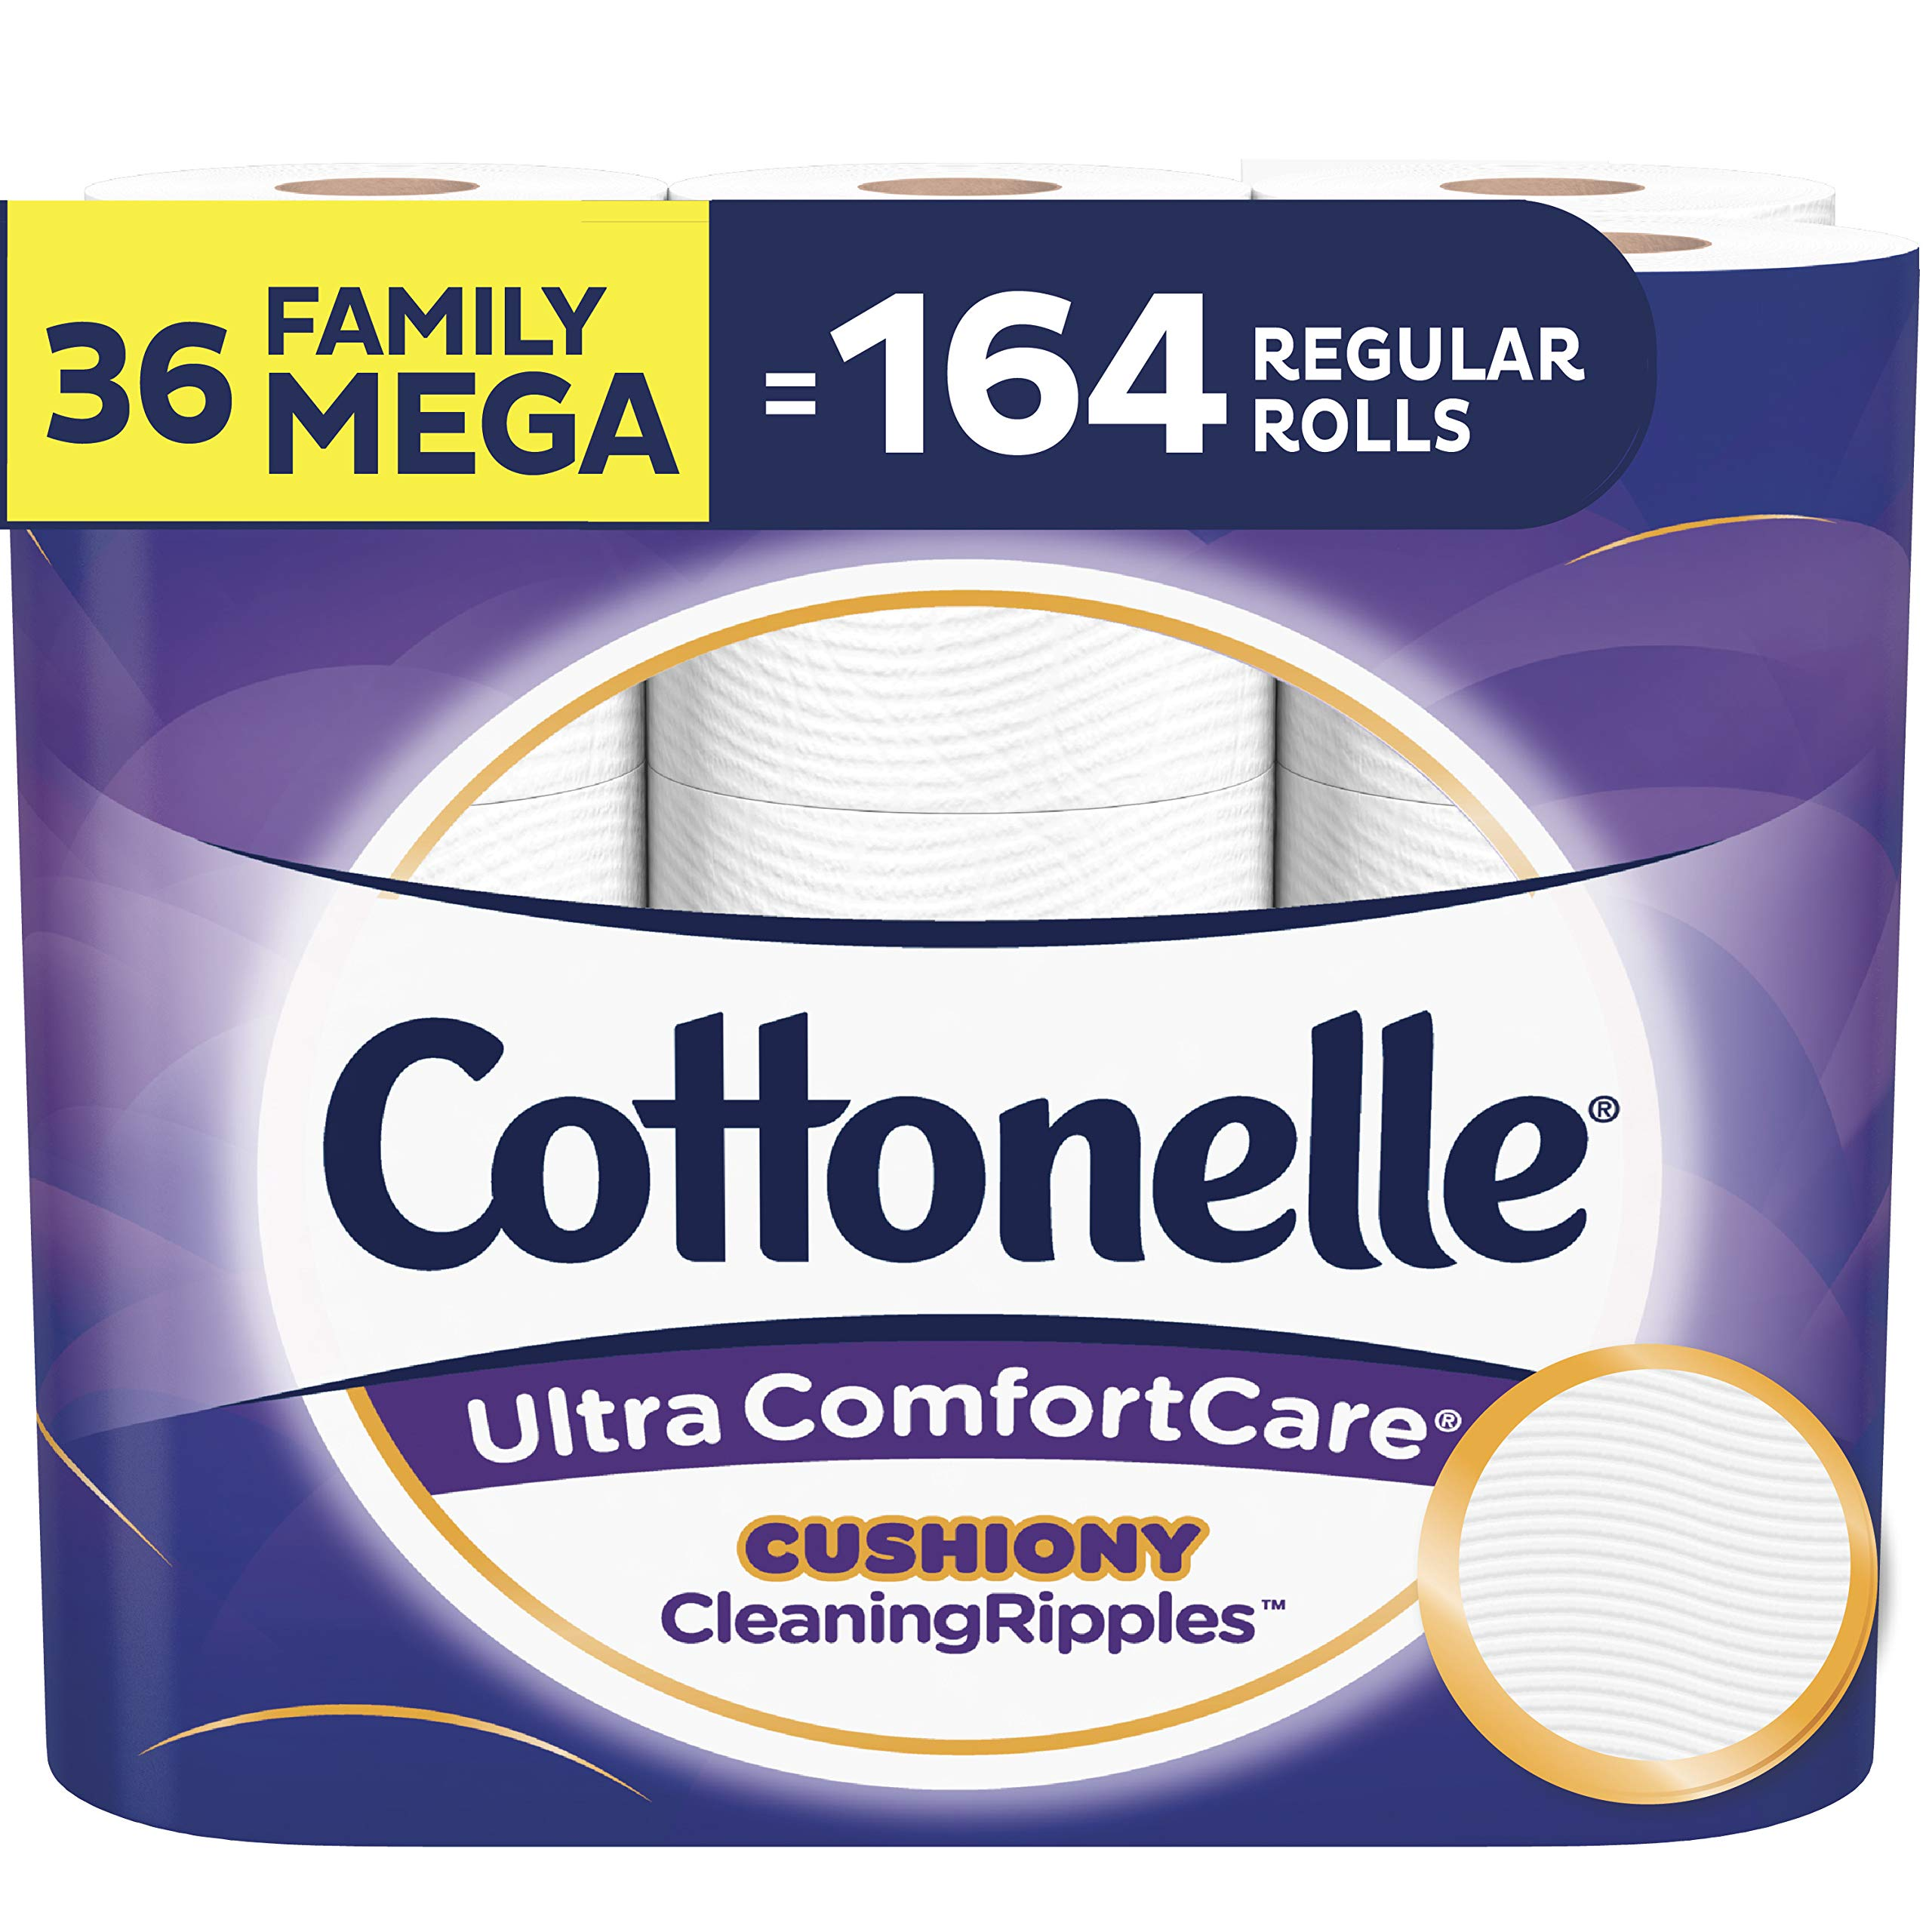 Cottonelle Ultra ComfortCare Toilet Paper with Cushiony CleaningRipples, Soft Biodegradable Bath Tissue, Septic-Safe, 36 Family Mega Rolls by Cottonelle